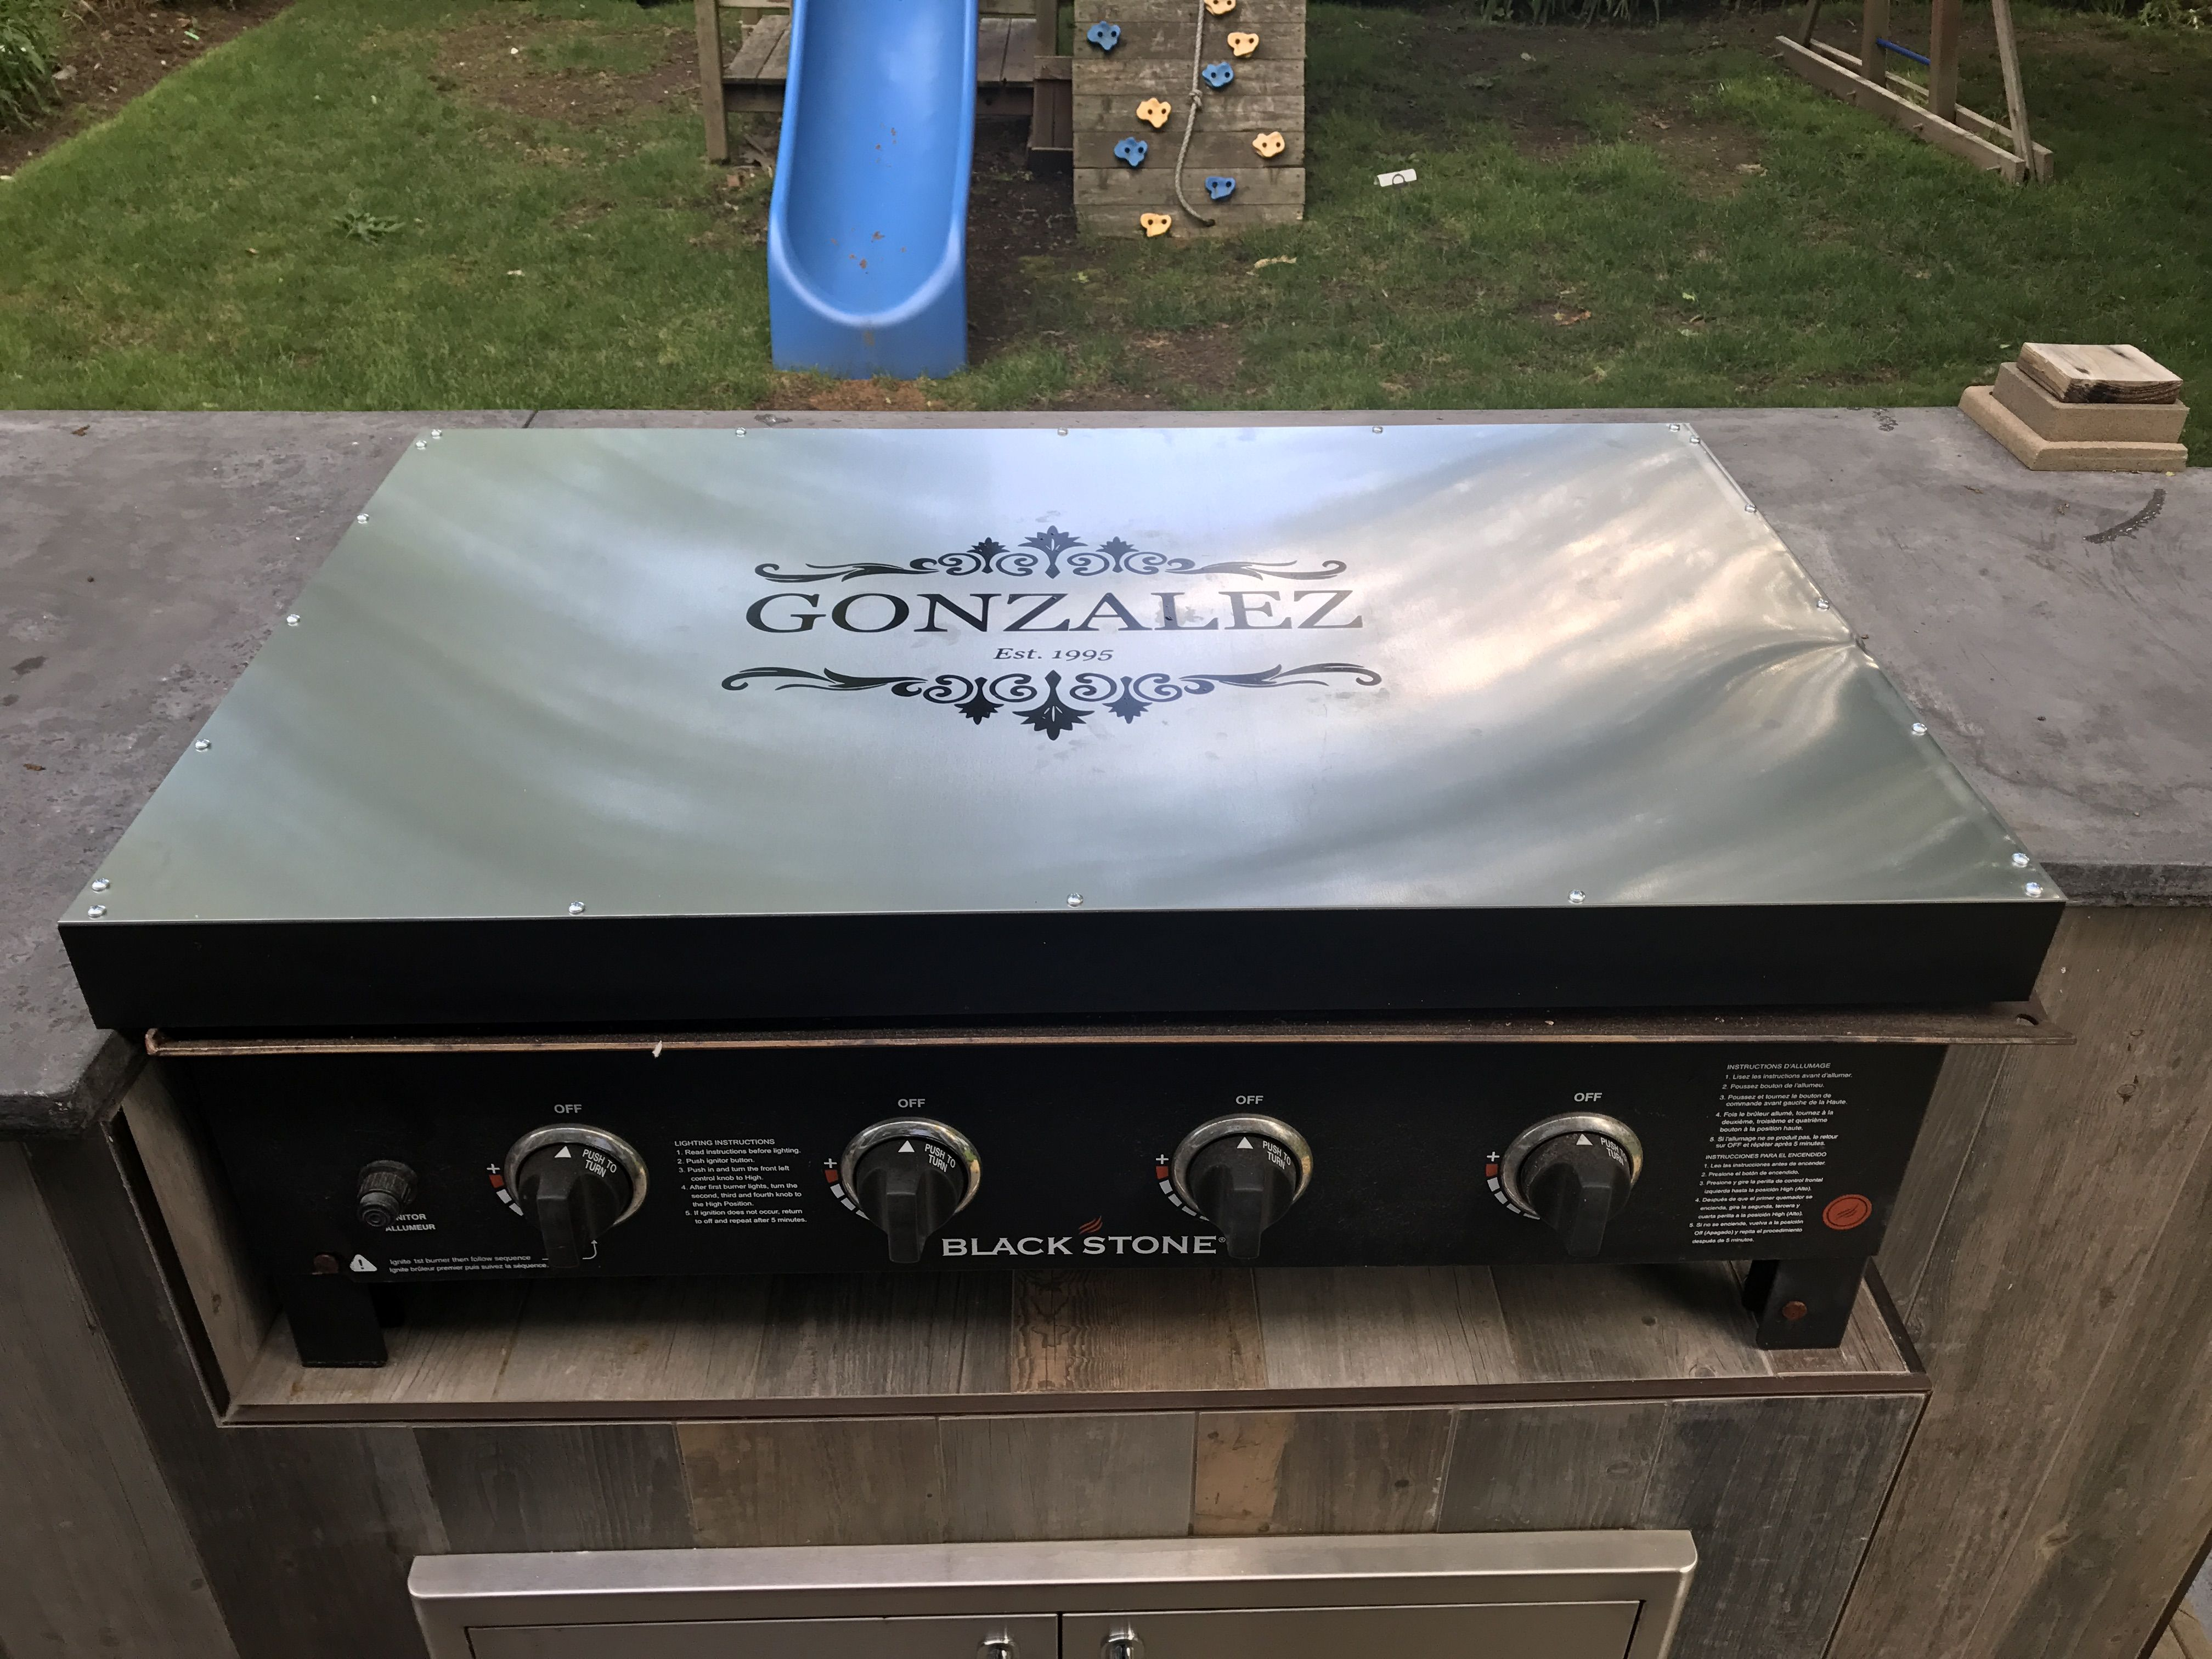 Stove Top Cover For Blackstone Griddle Made Out Of Aluminium Sheet For The Top With A Vinyl Decal And Outdoor Bbq Kitchen Outdoor Kitchen Backyard Diy Projects